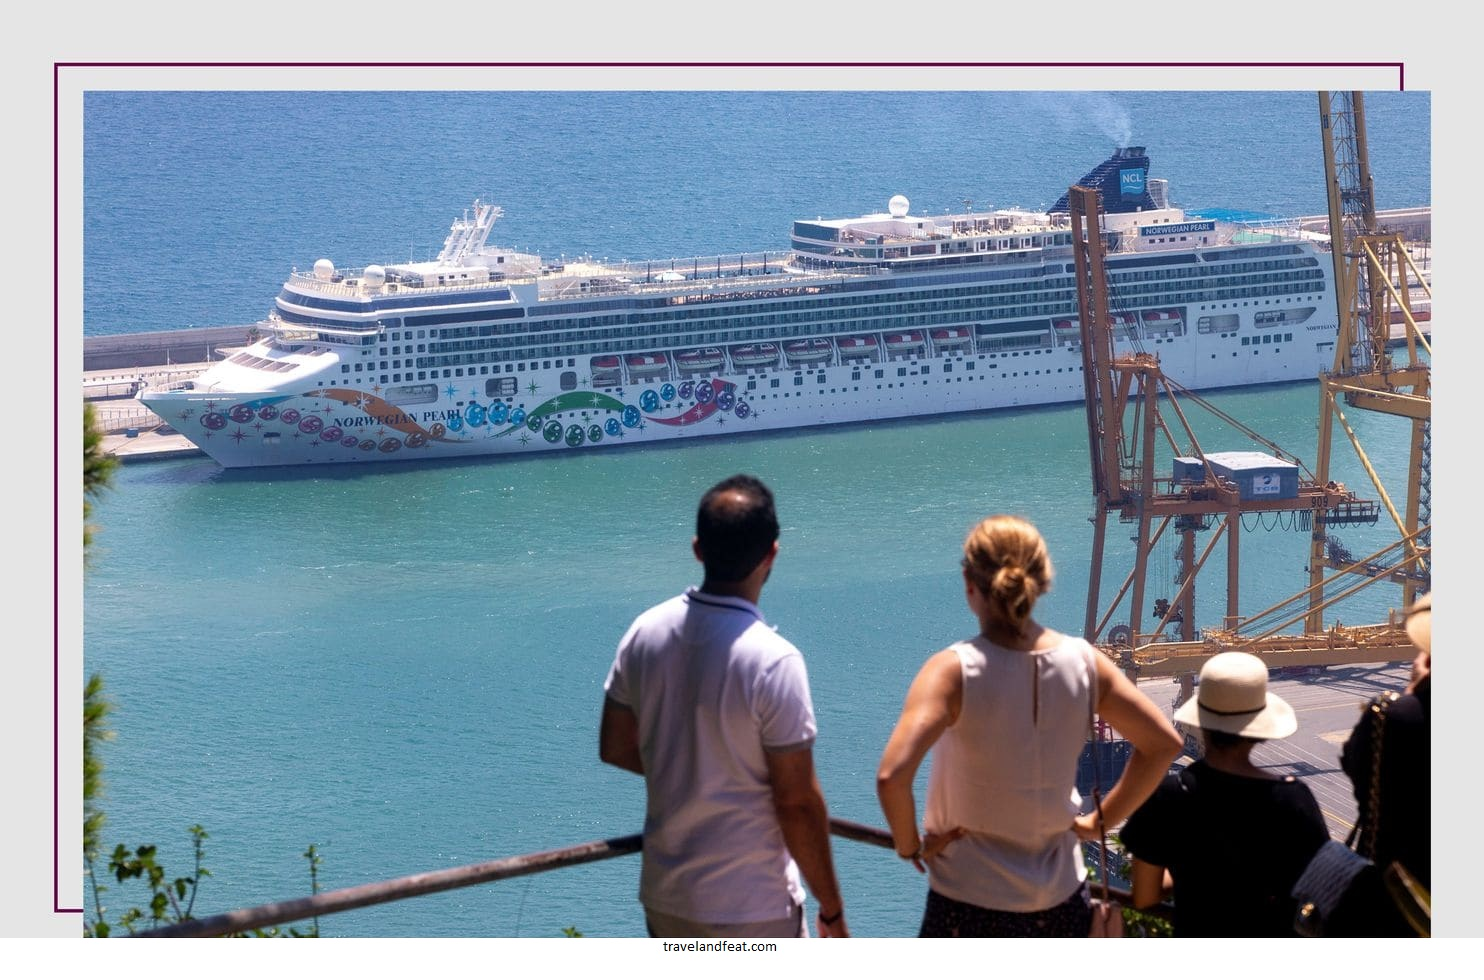 CRUISES AND THEIR ENVIRONMENTAL COMMITMENT